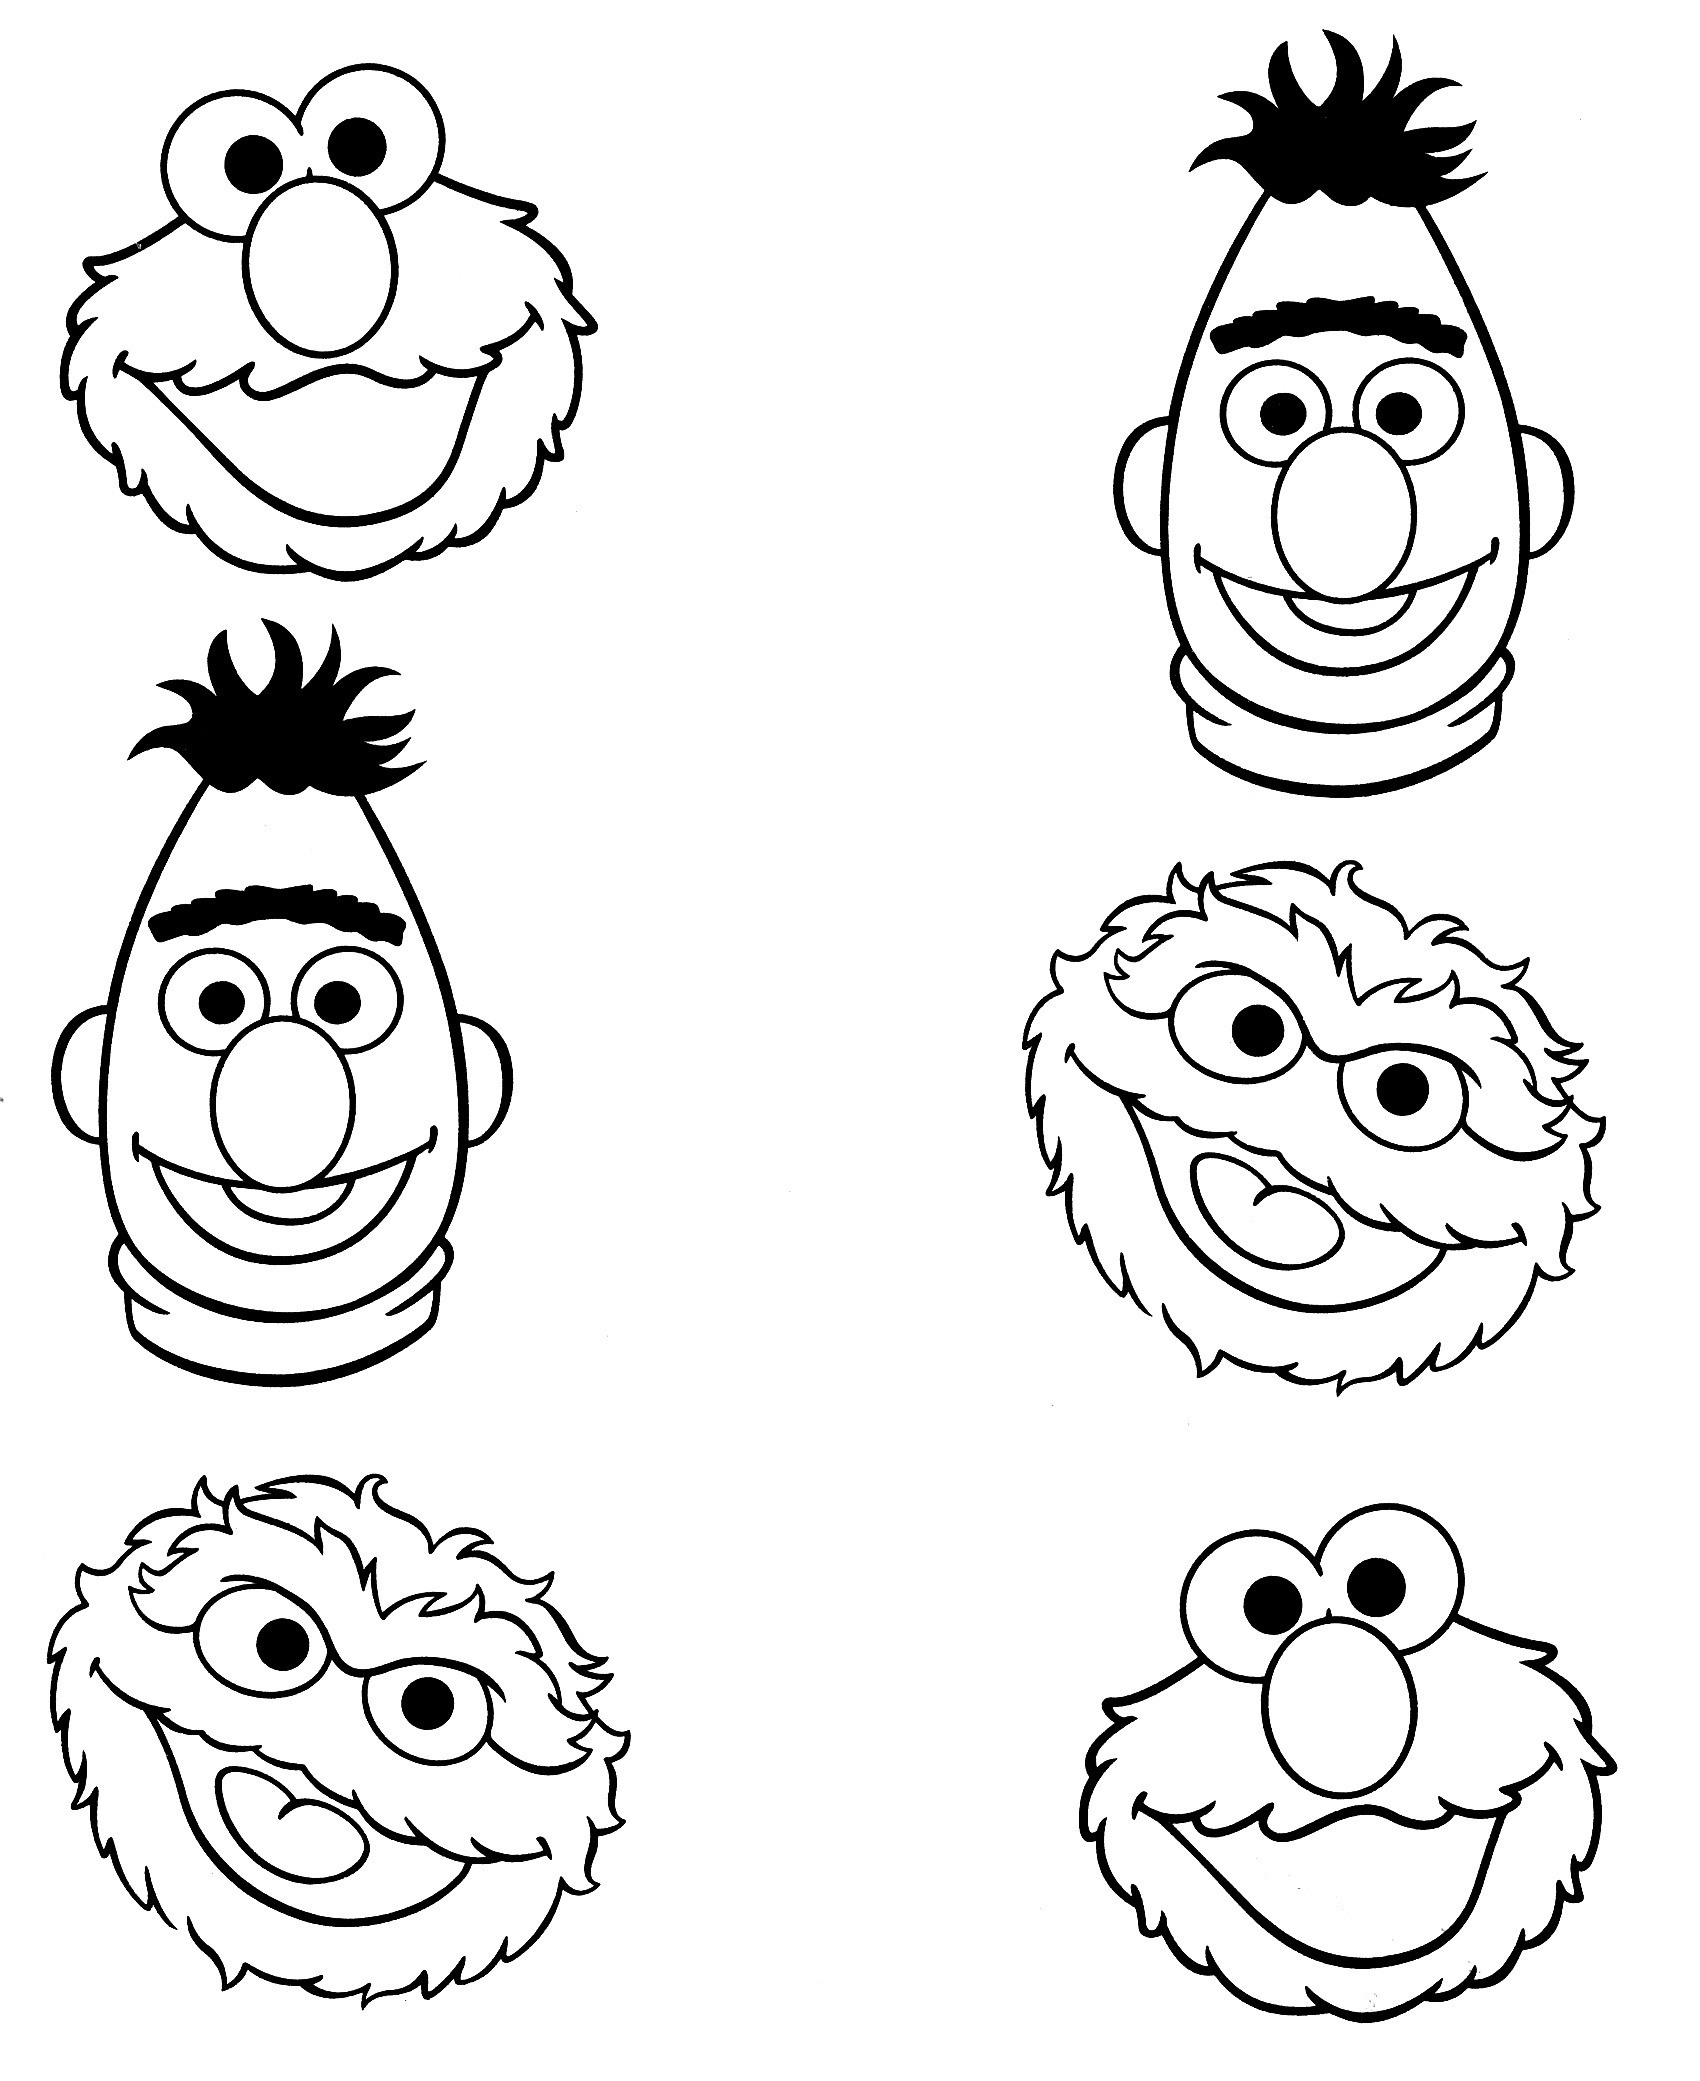 Coloring Pages Sesame Street Color Pages printable sesame street coloring pages me character face pages